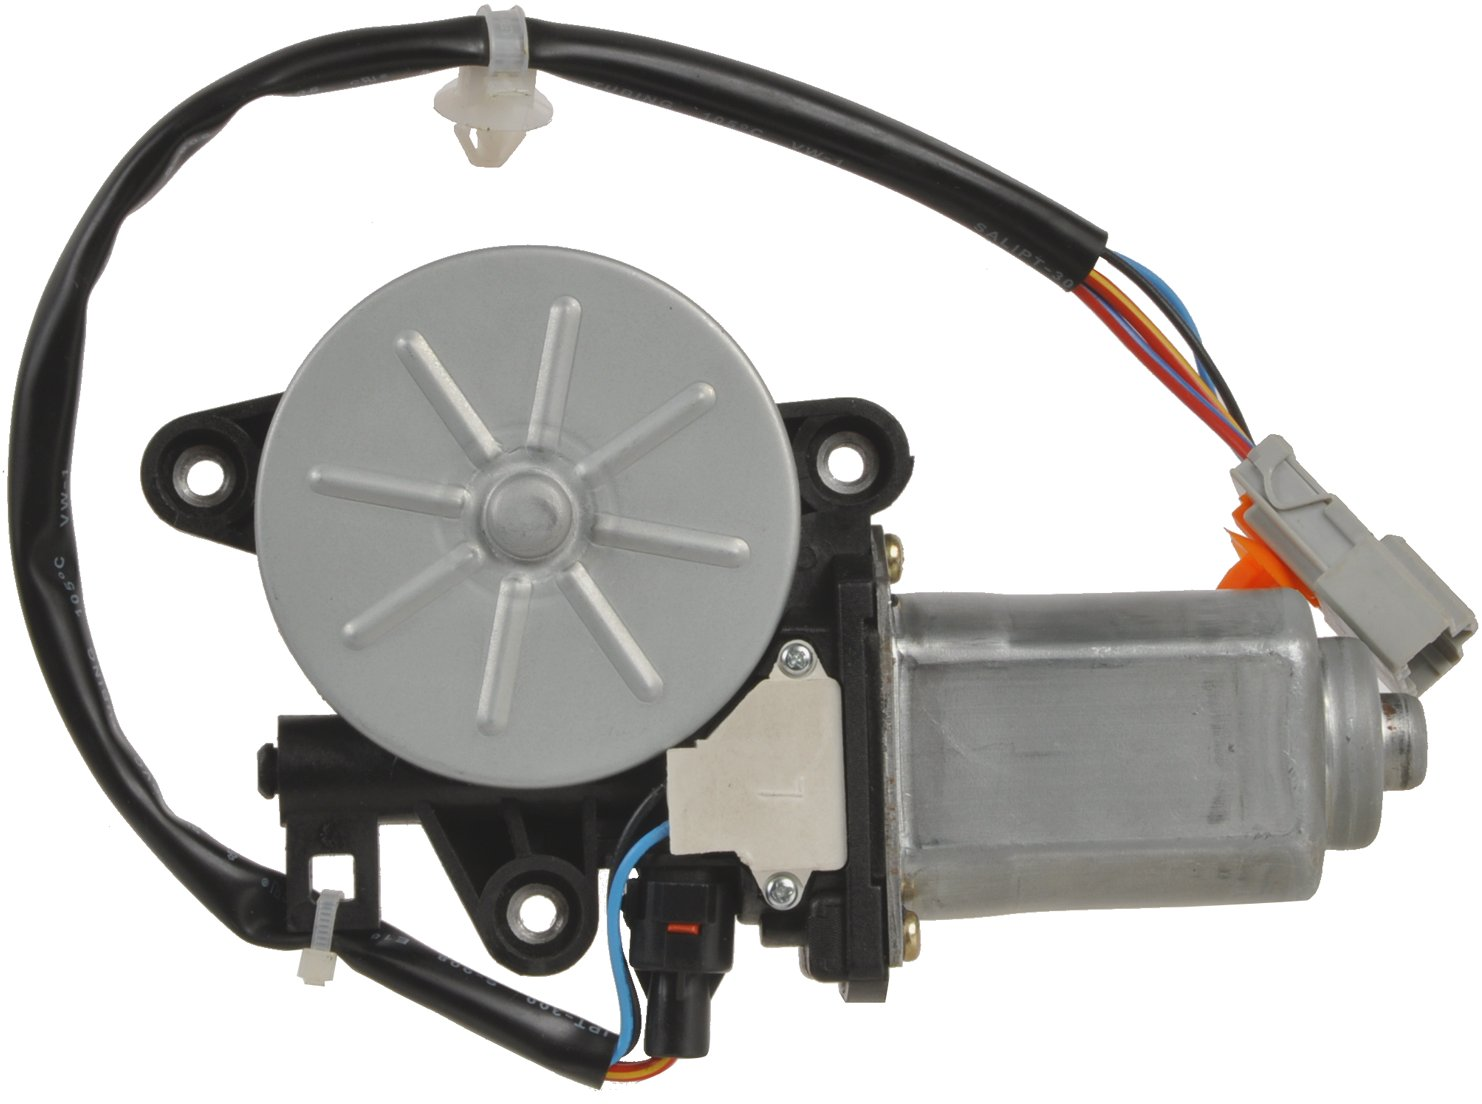 1997 honda crv window motor for 1997 honda crv window regulator